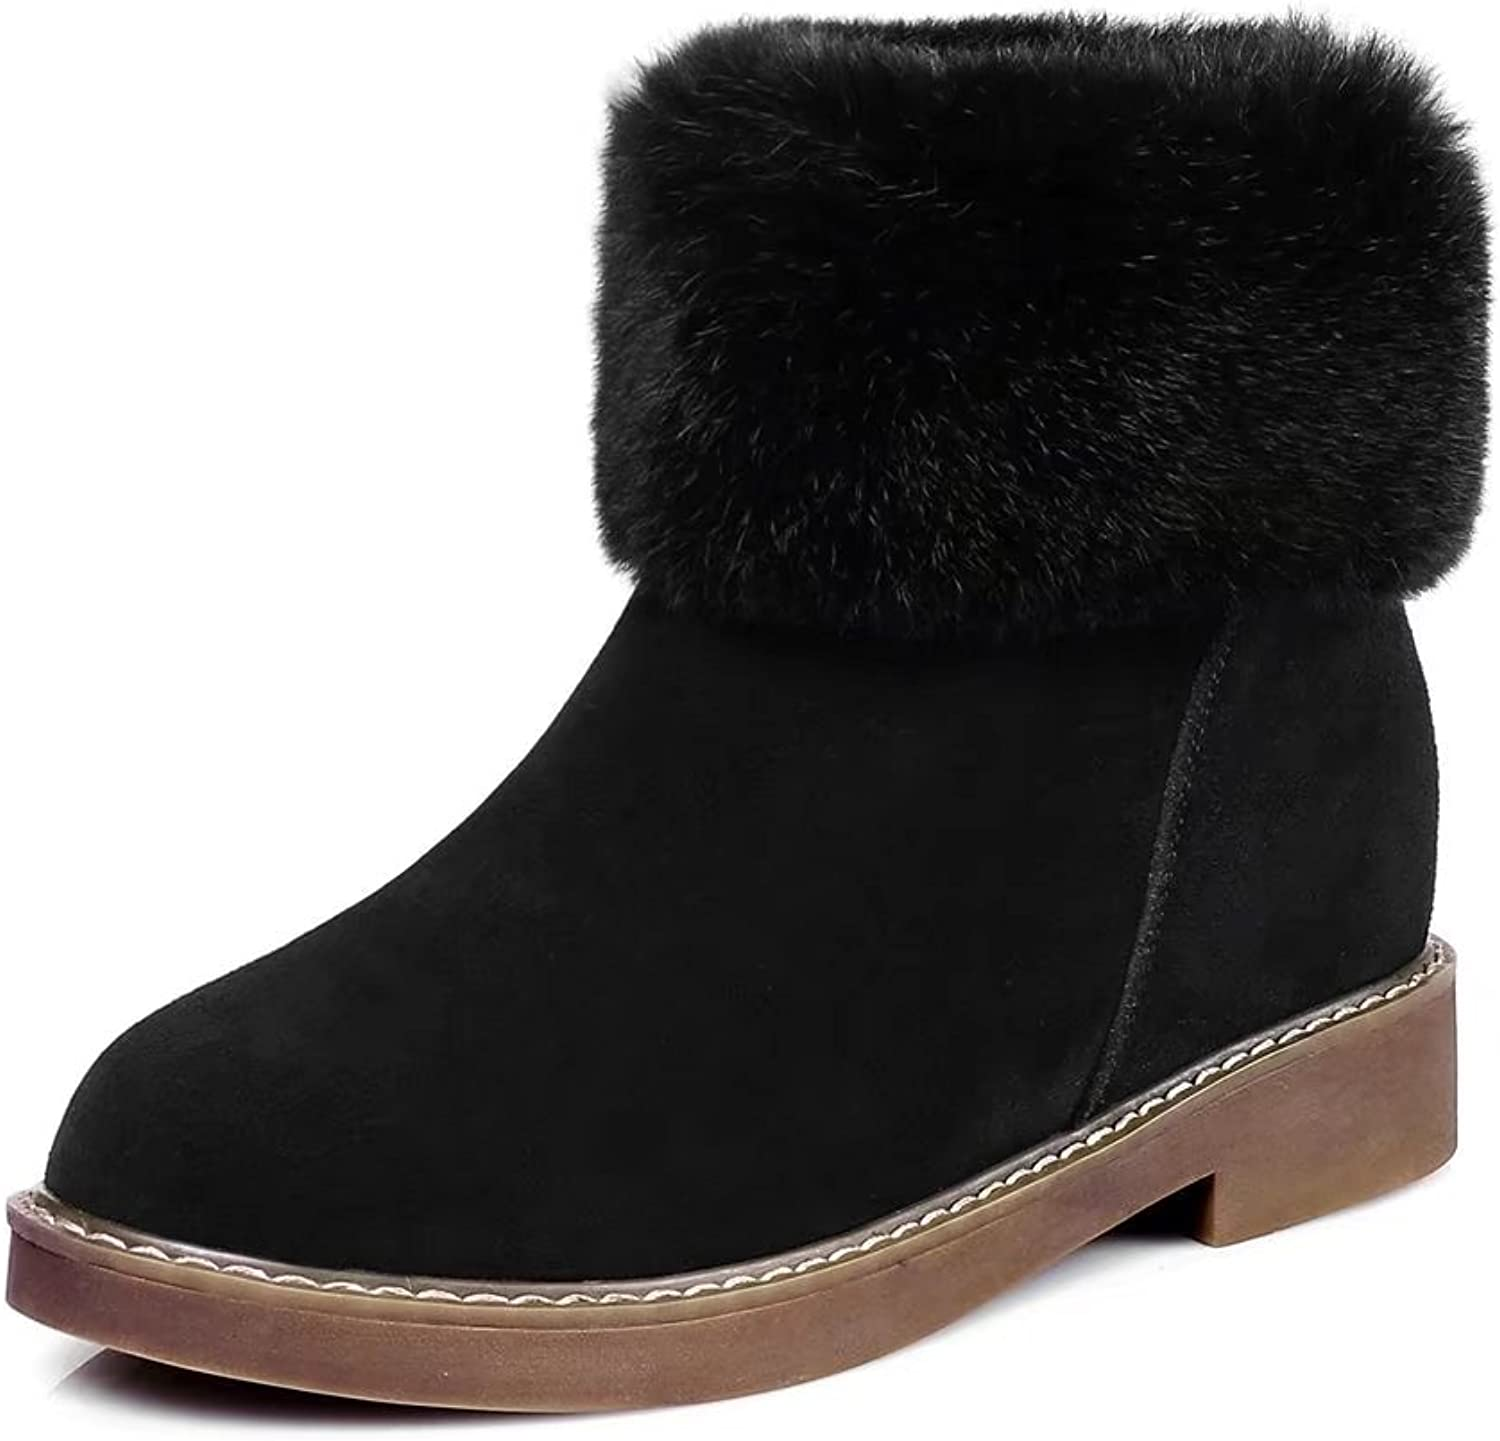 VIMISAOI Women's Suede Leather Plush Upper Chunky Heel Zipper Winter Snow shoes Ankle Boots